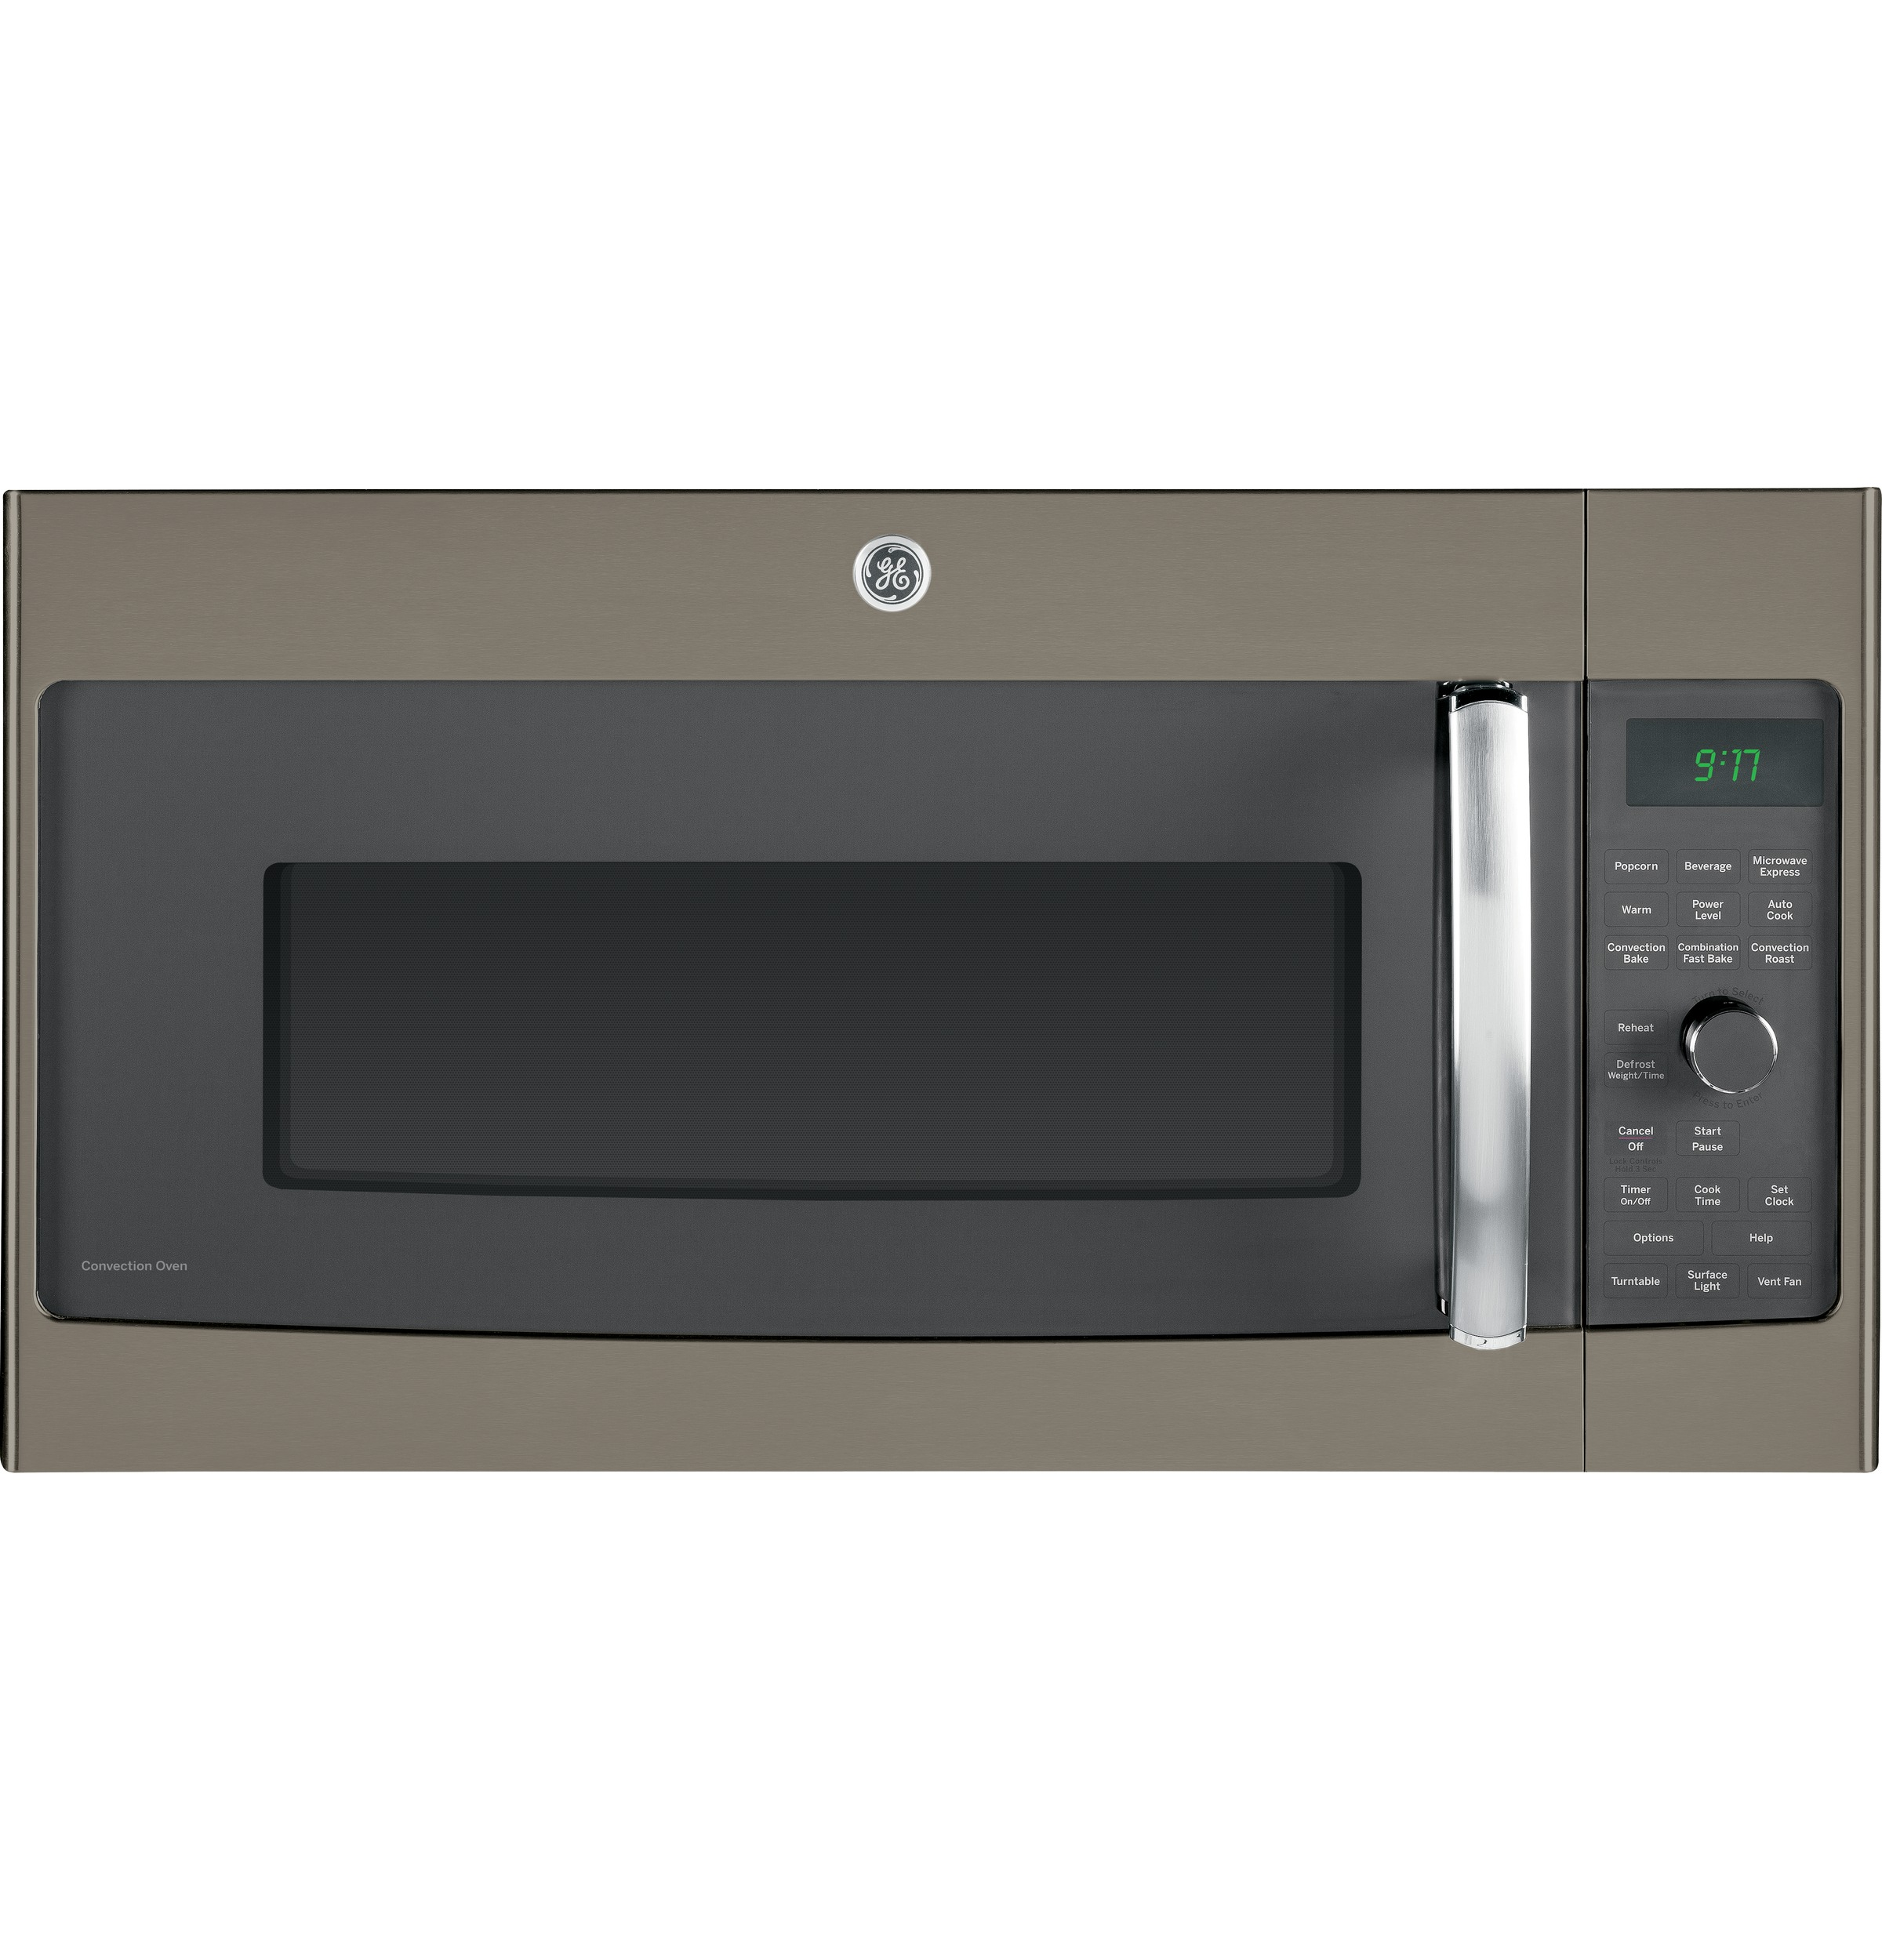 Ge Profile Series 1 7 Cu Ft Over The Range Convection Microwave Oven Pvm9179efes